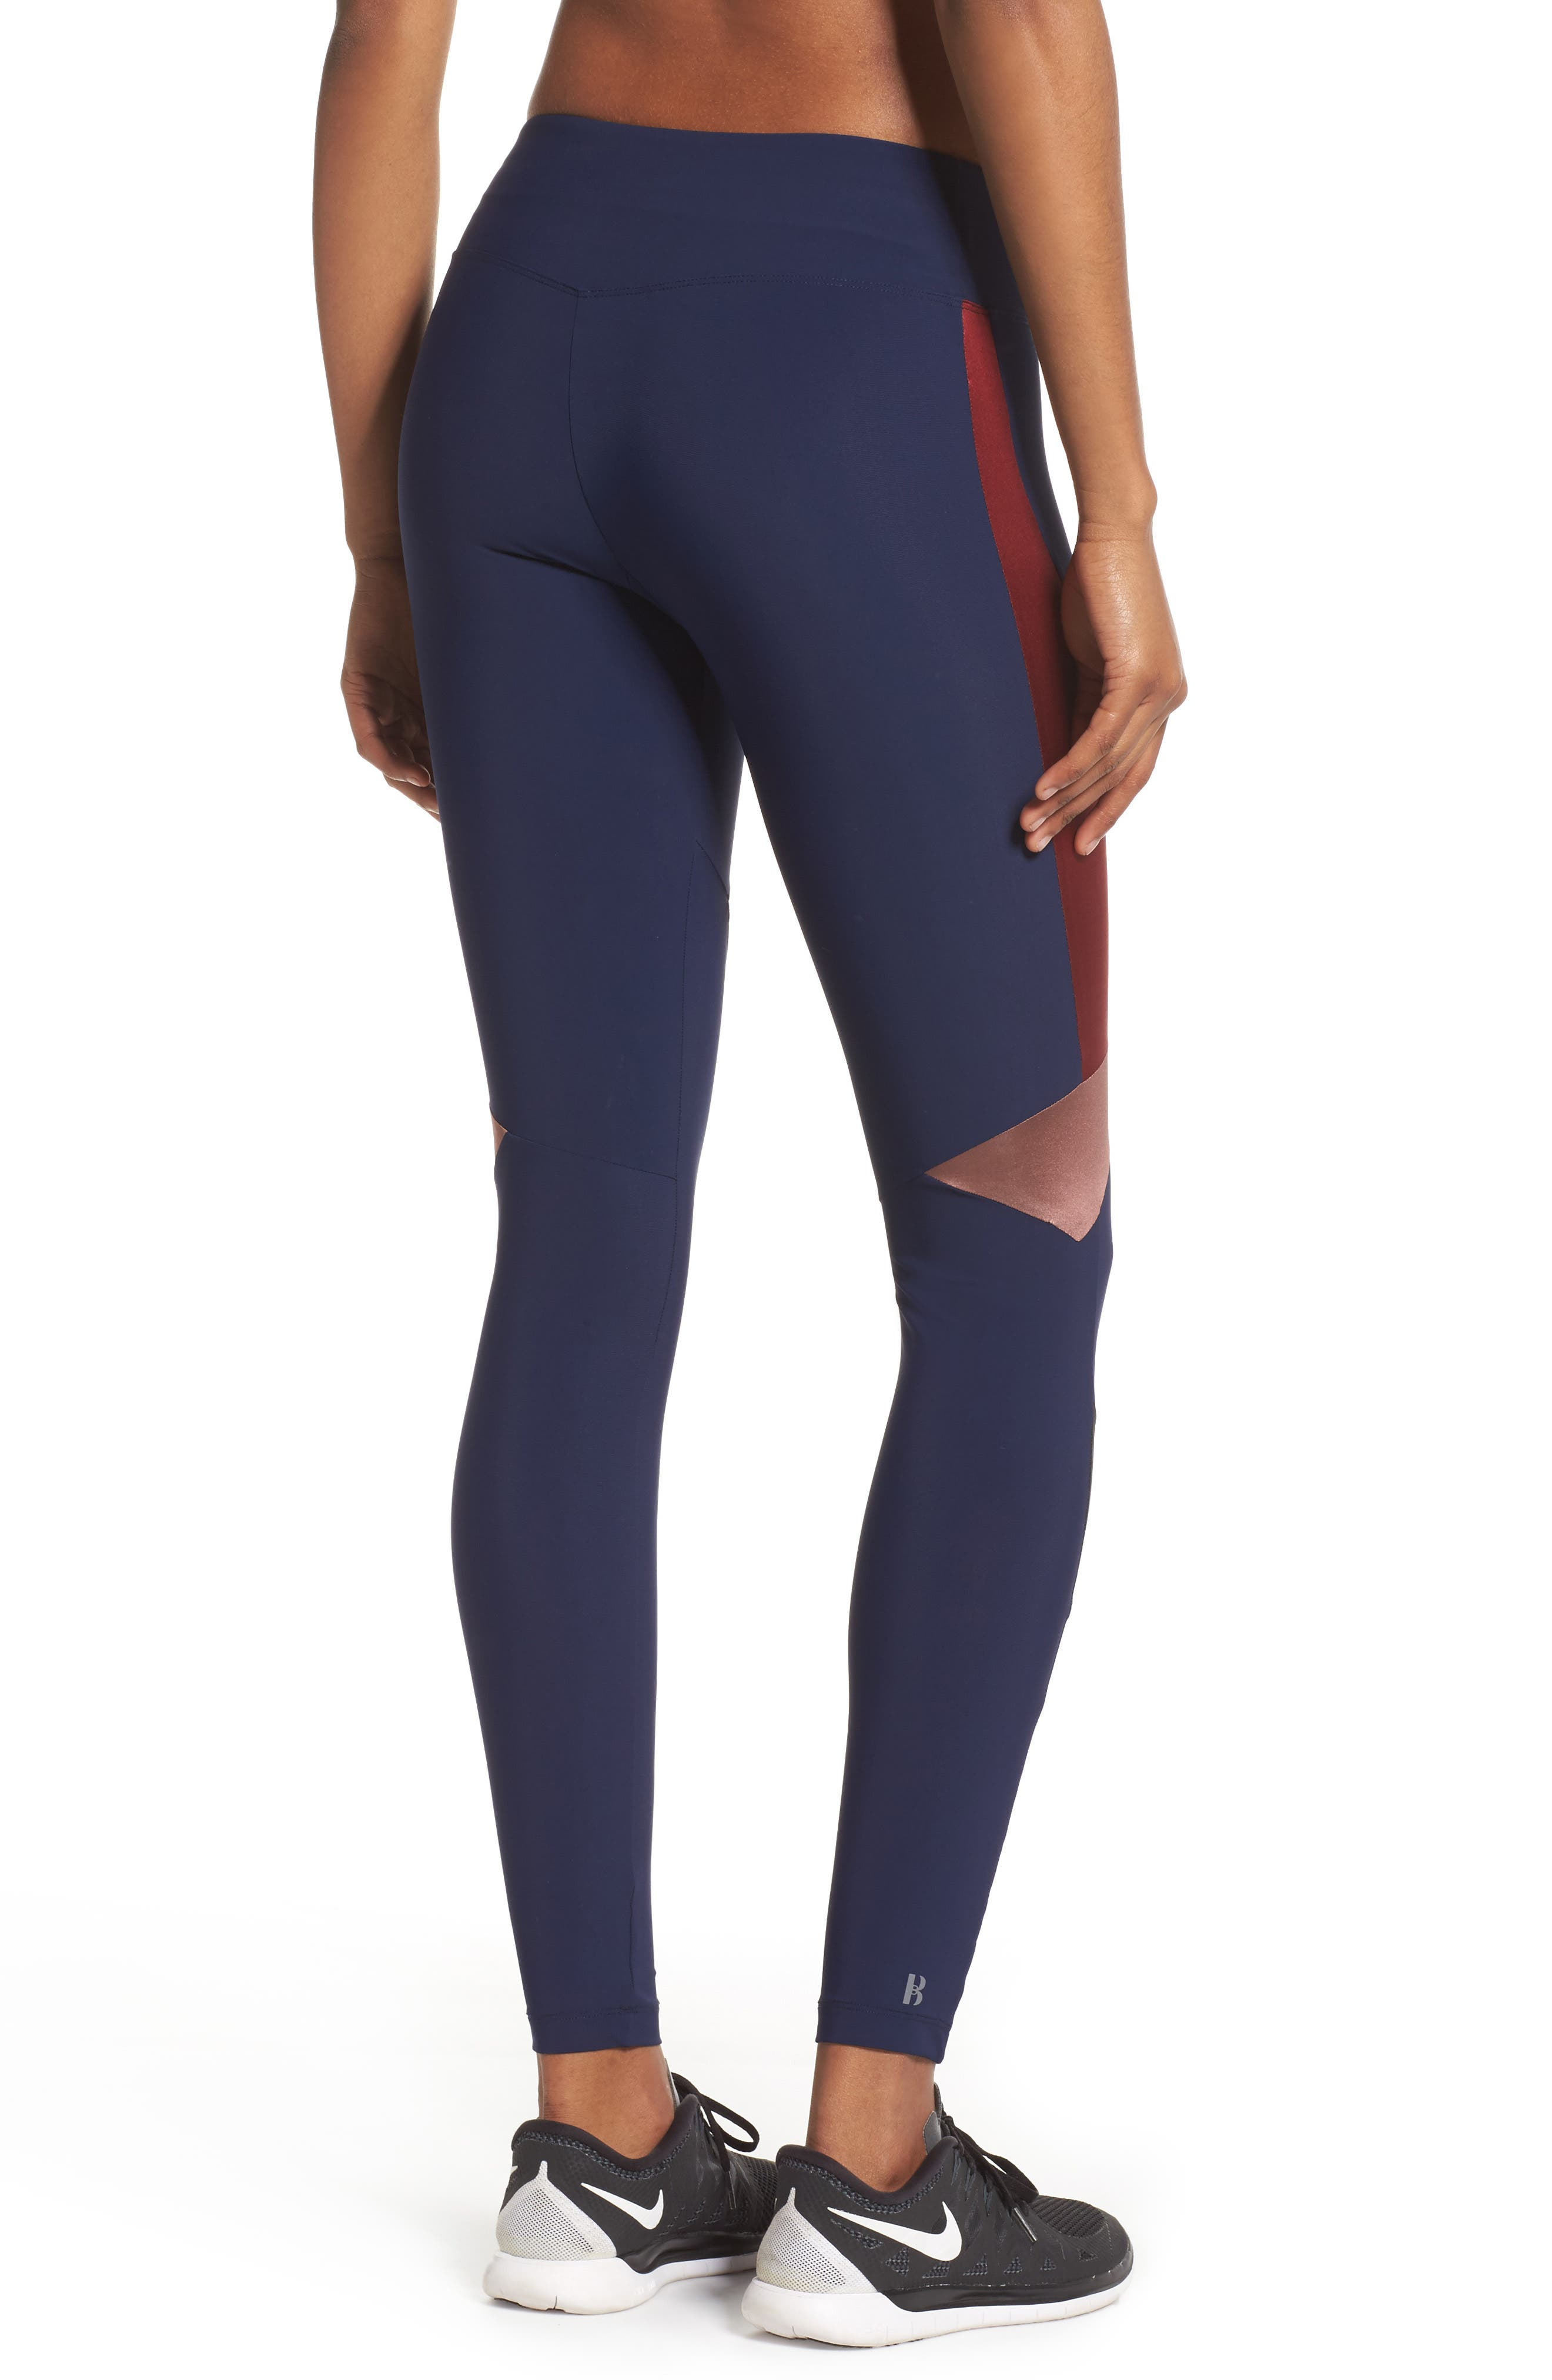 BoomBoom Athletica Compression Leggings,                             Alternate thumbnail 2, color,                             Navy/Oxblood/Rose Gold